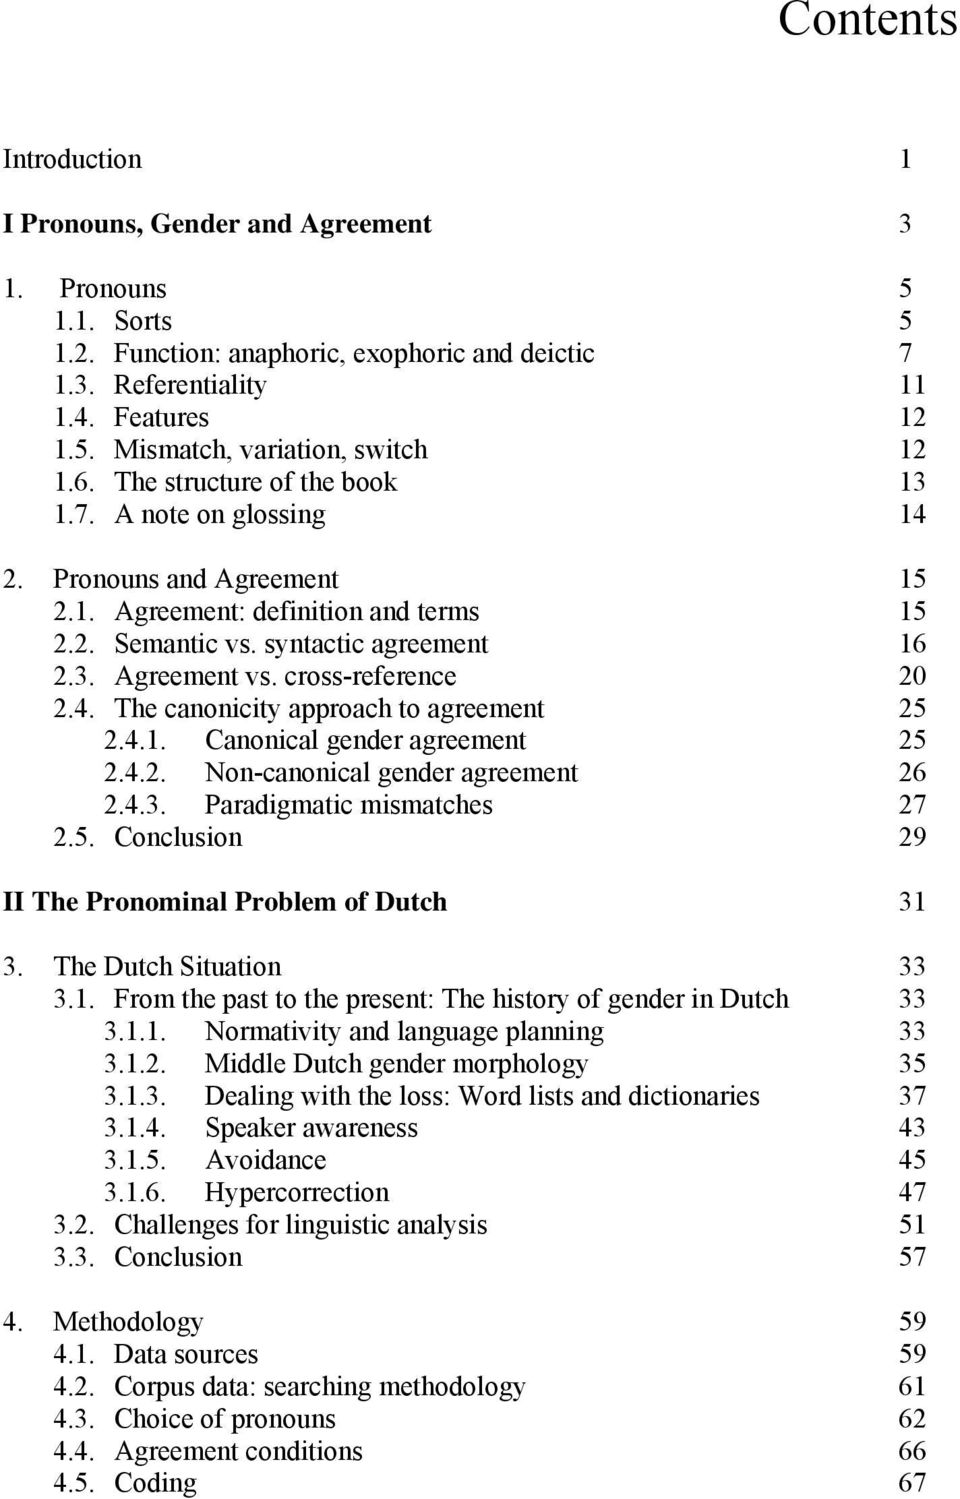 cross-reference 20 2.4. The canonicity approach to agreement 25 2.4.1. Canonical gender agreement 25 2.4.2. Non-canonical gender agreement 26 2.4.3. Paradigmatic mismatches 27 2.5. Conclusion 29 II The Pronominal Problem of Dutch 31 3.